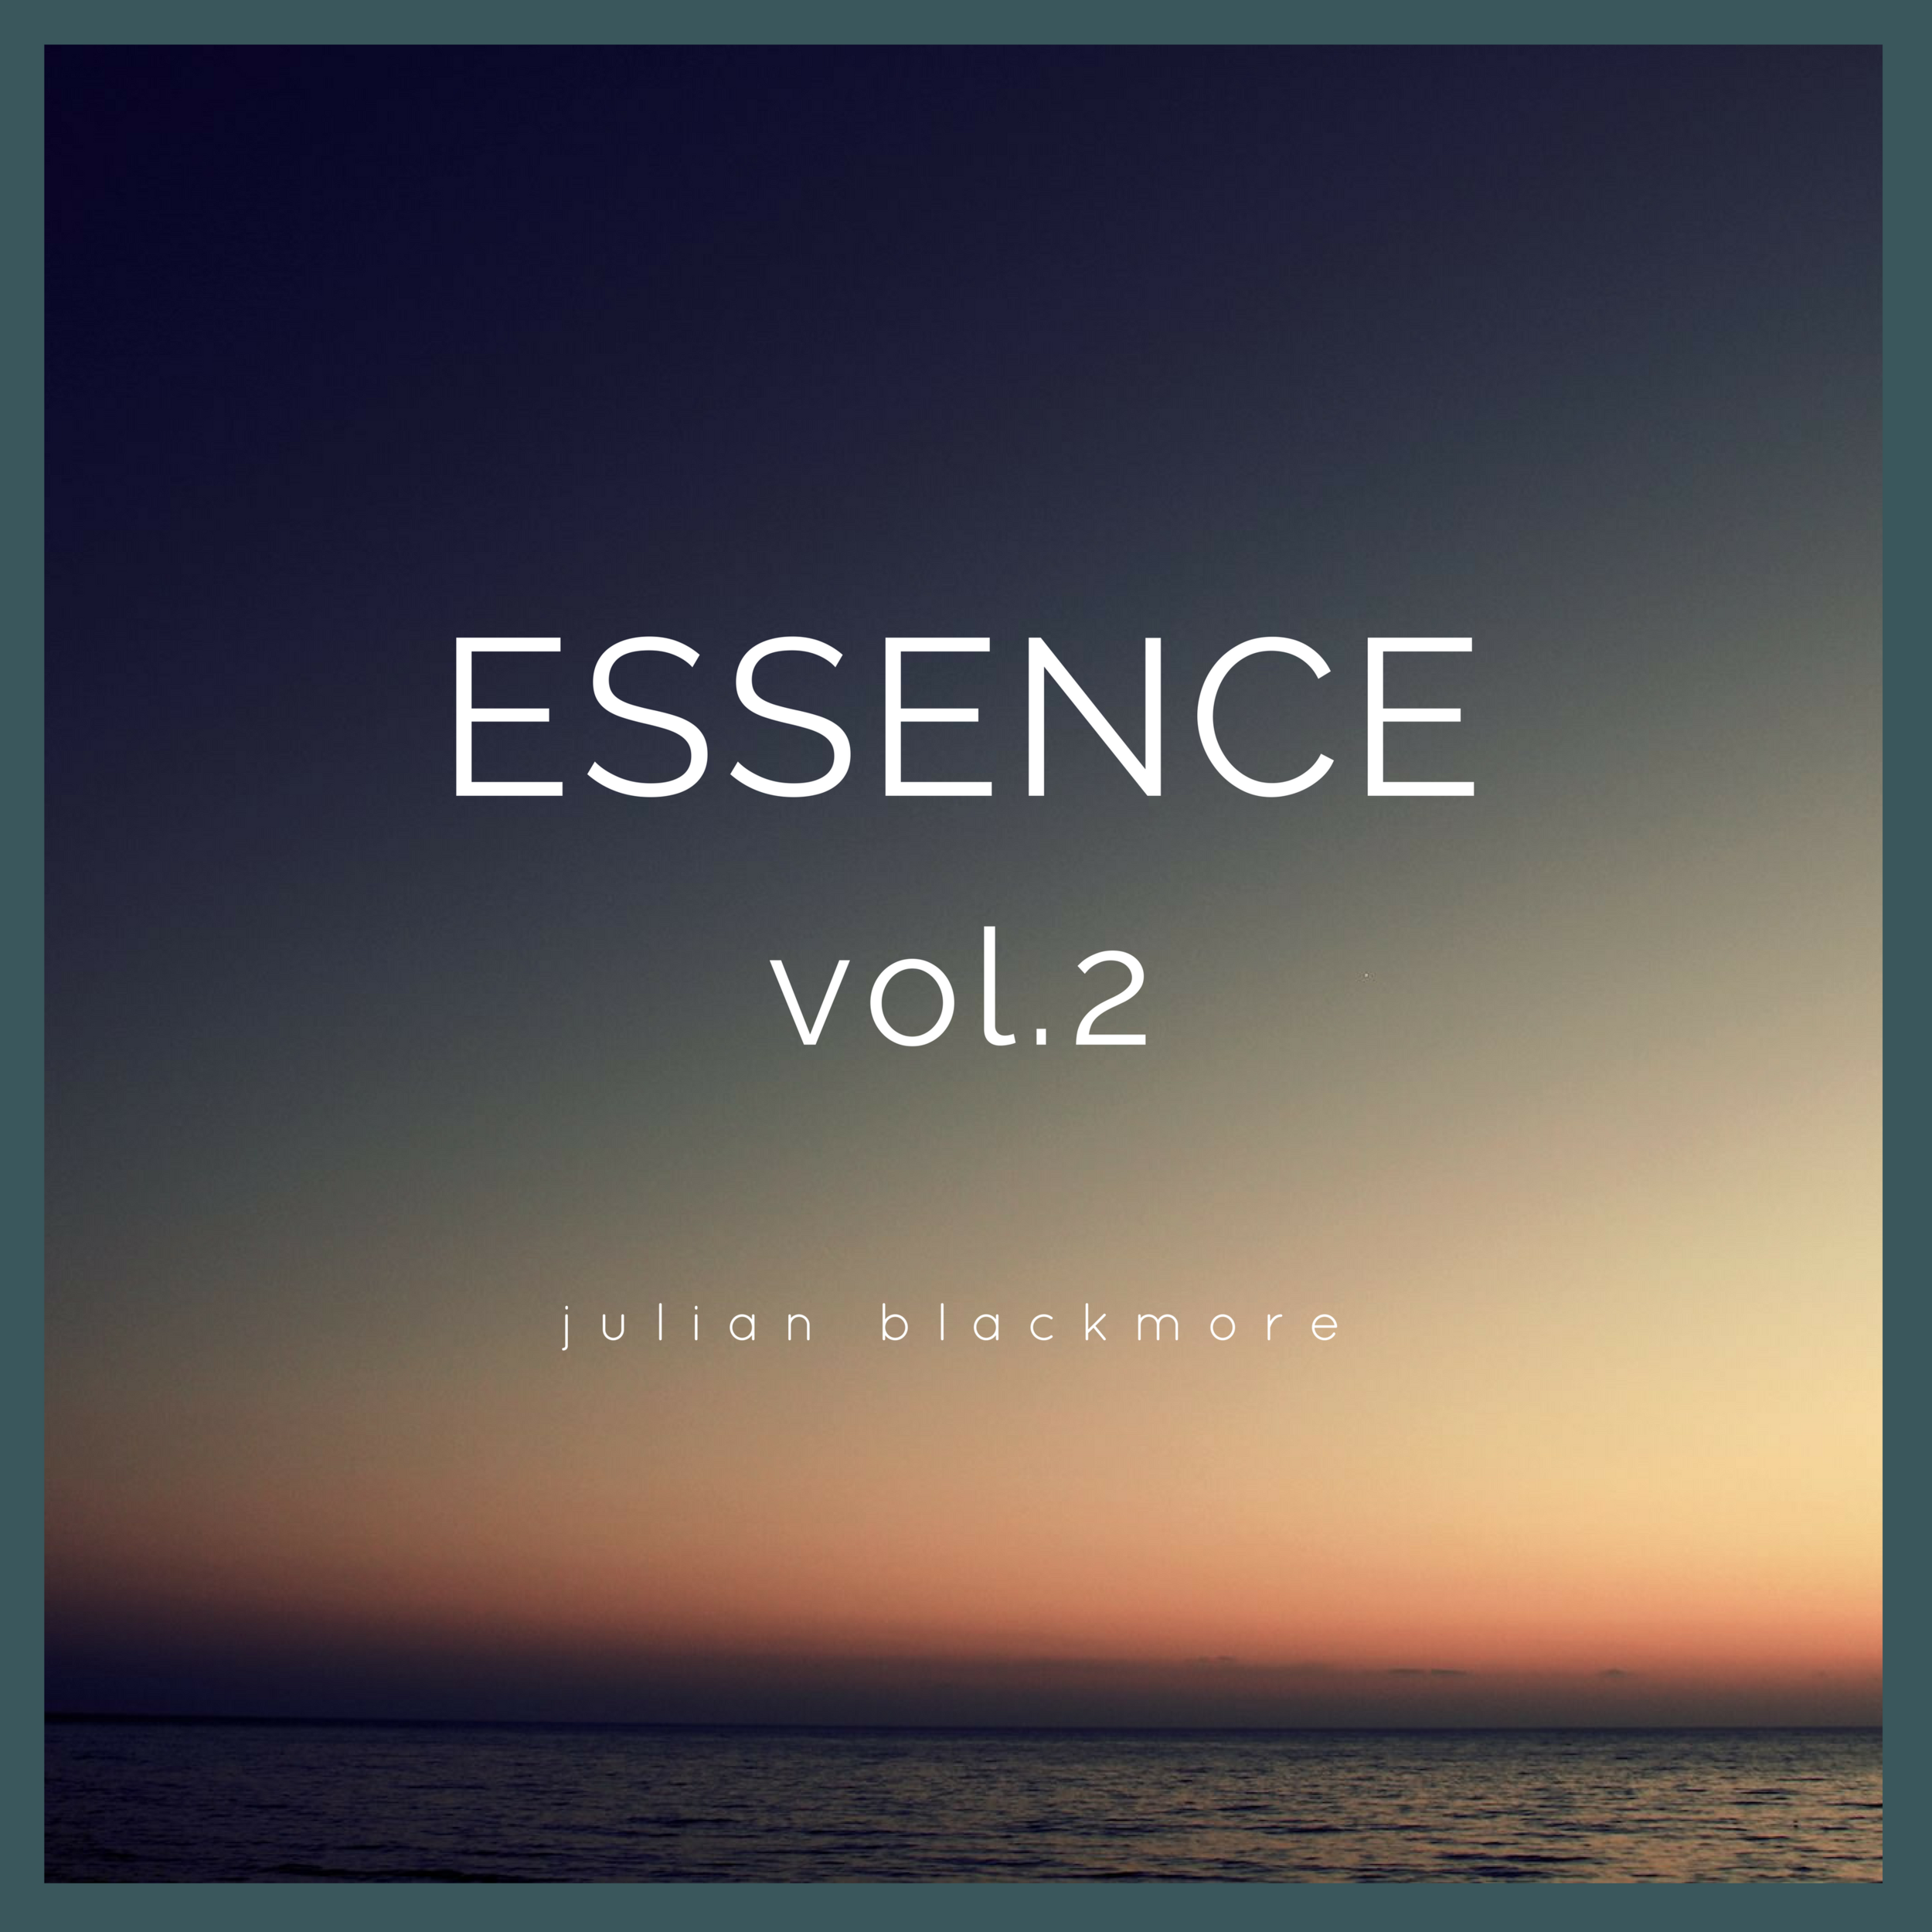 Essence Vol 2 Cover 3000x3000.png